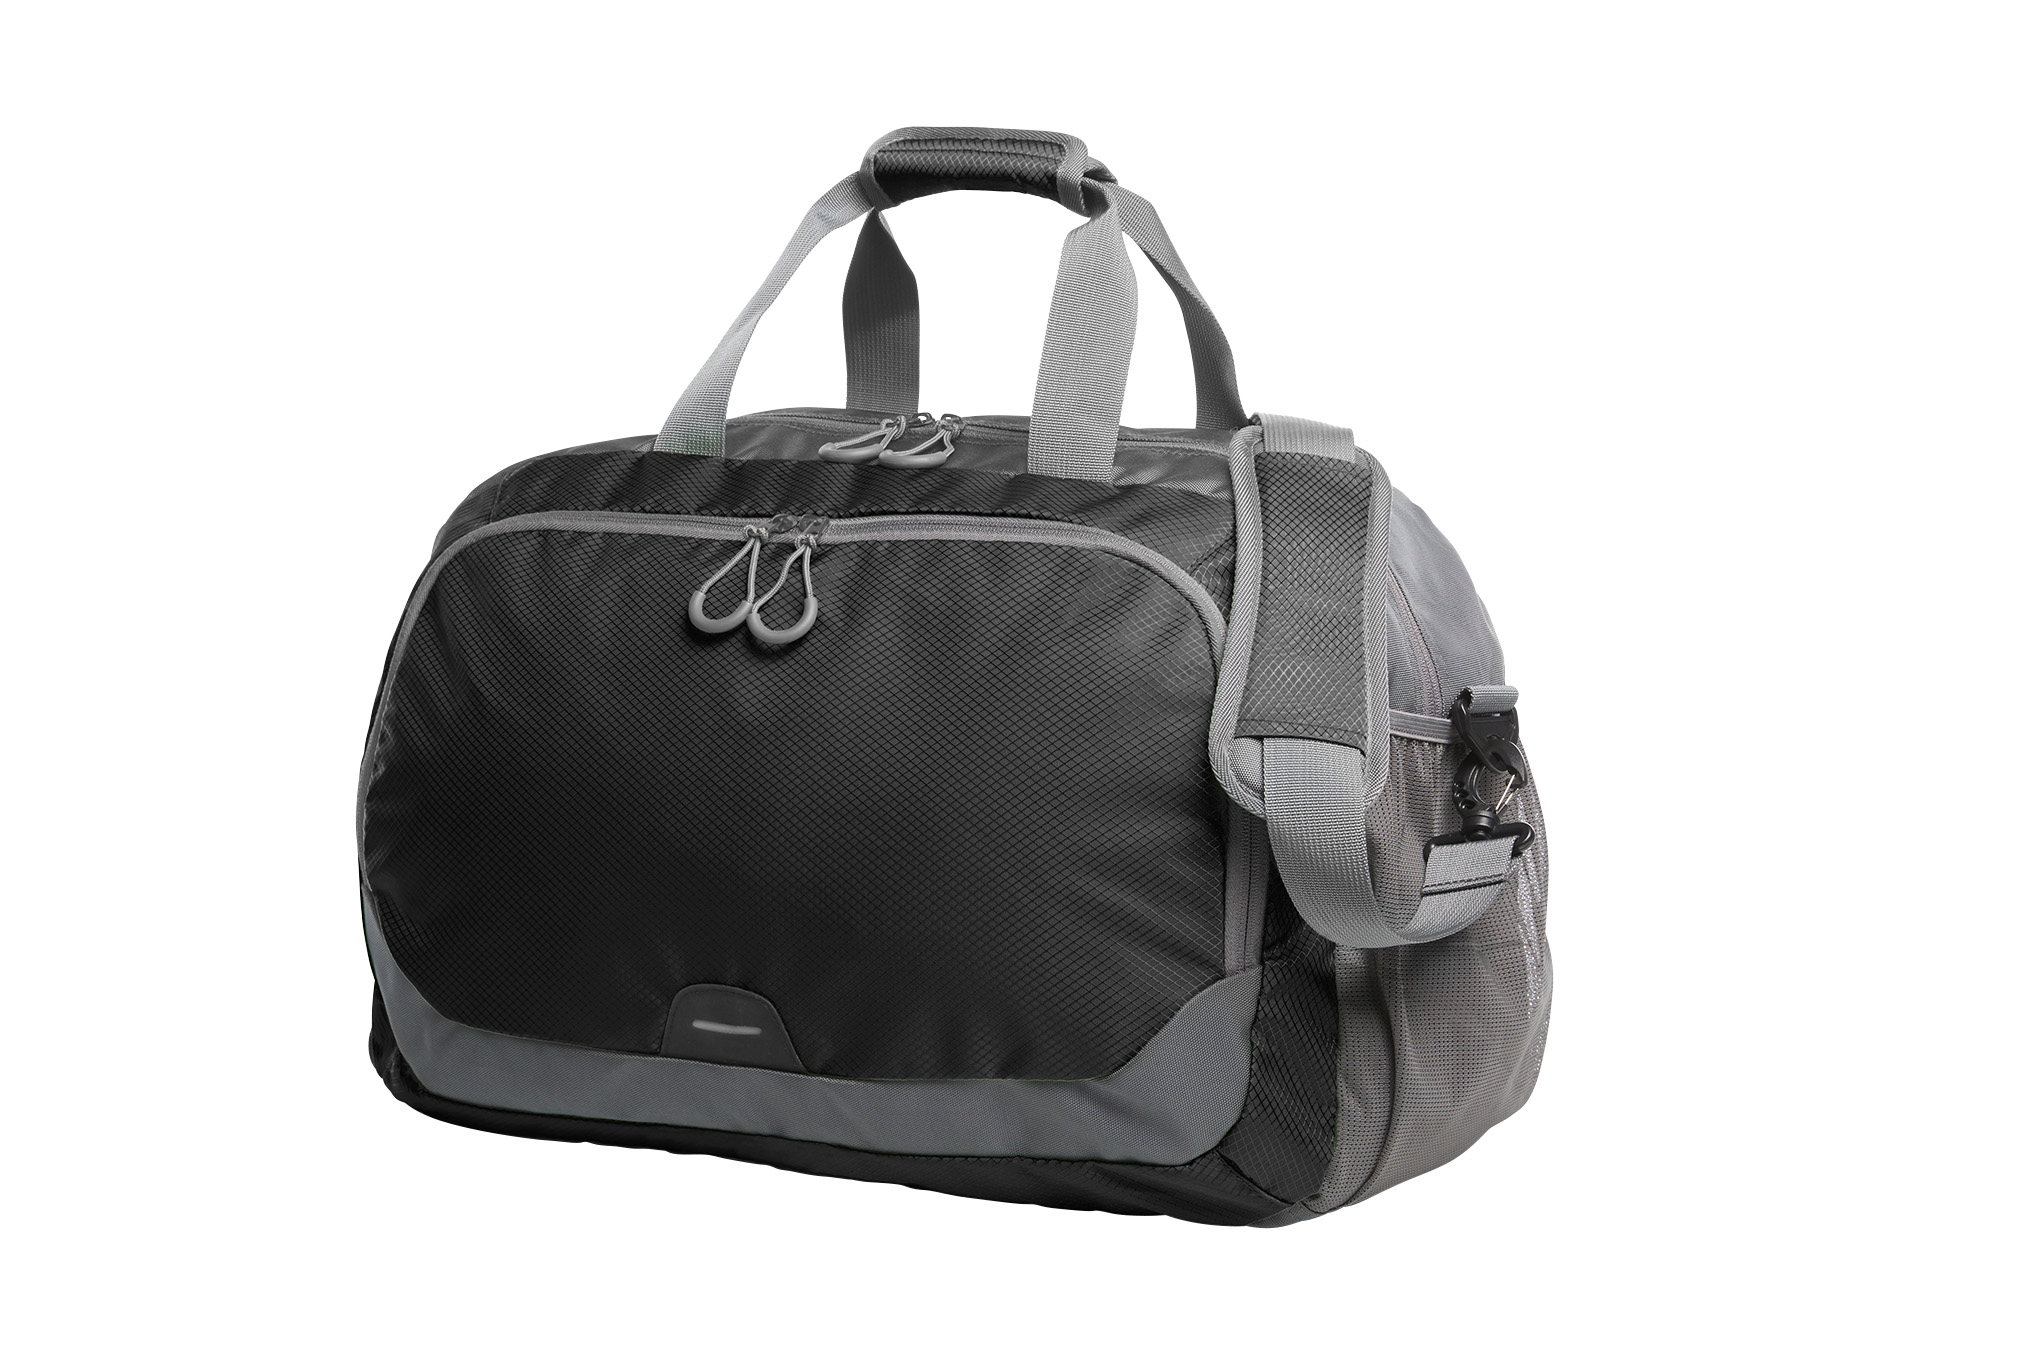 Black and Grey STEP Sports and Travel Bag